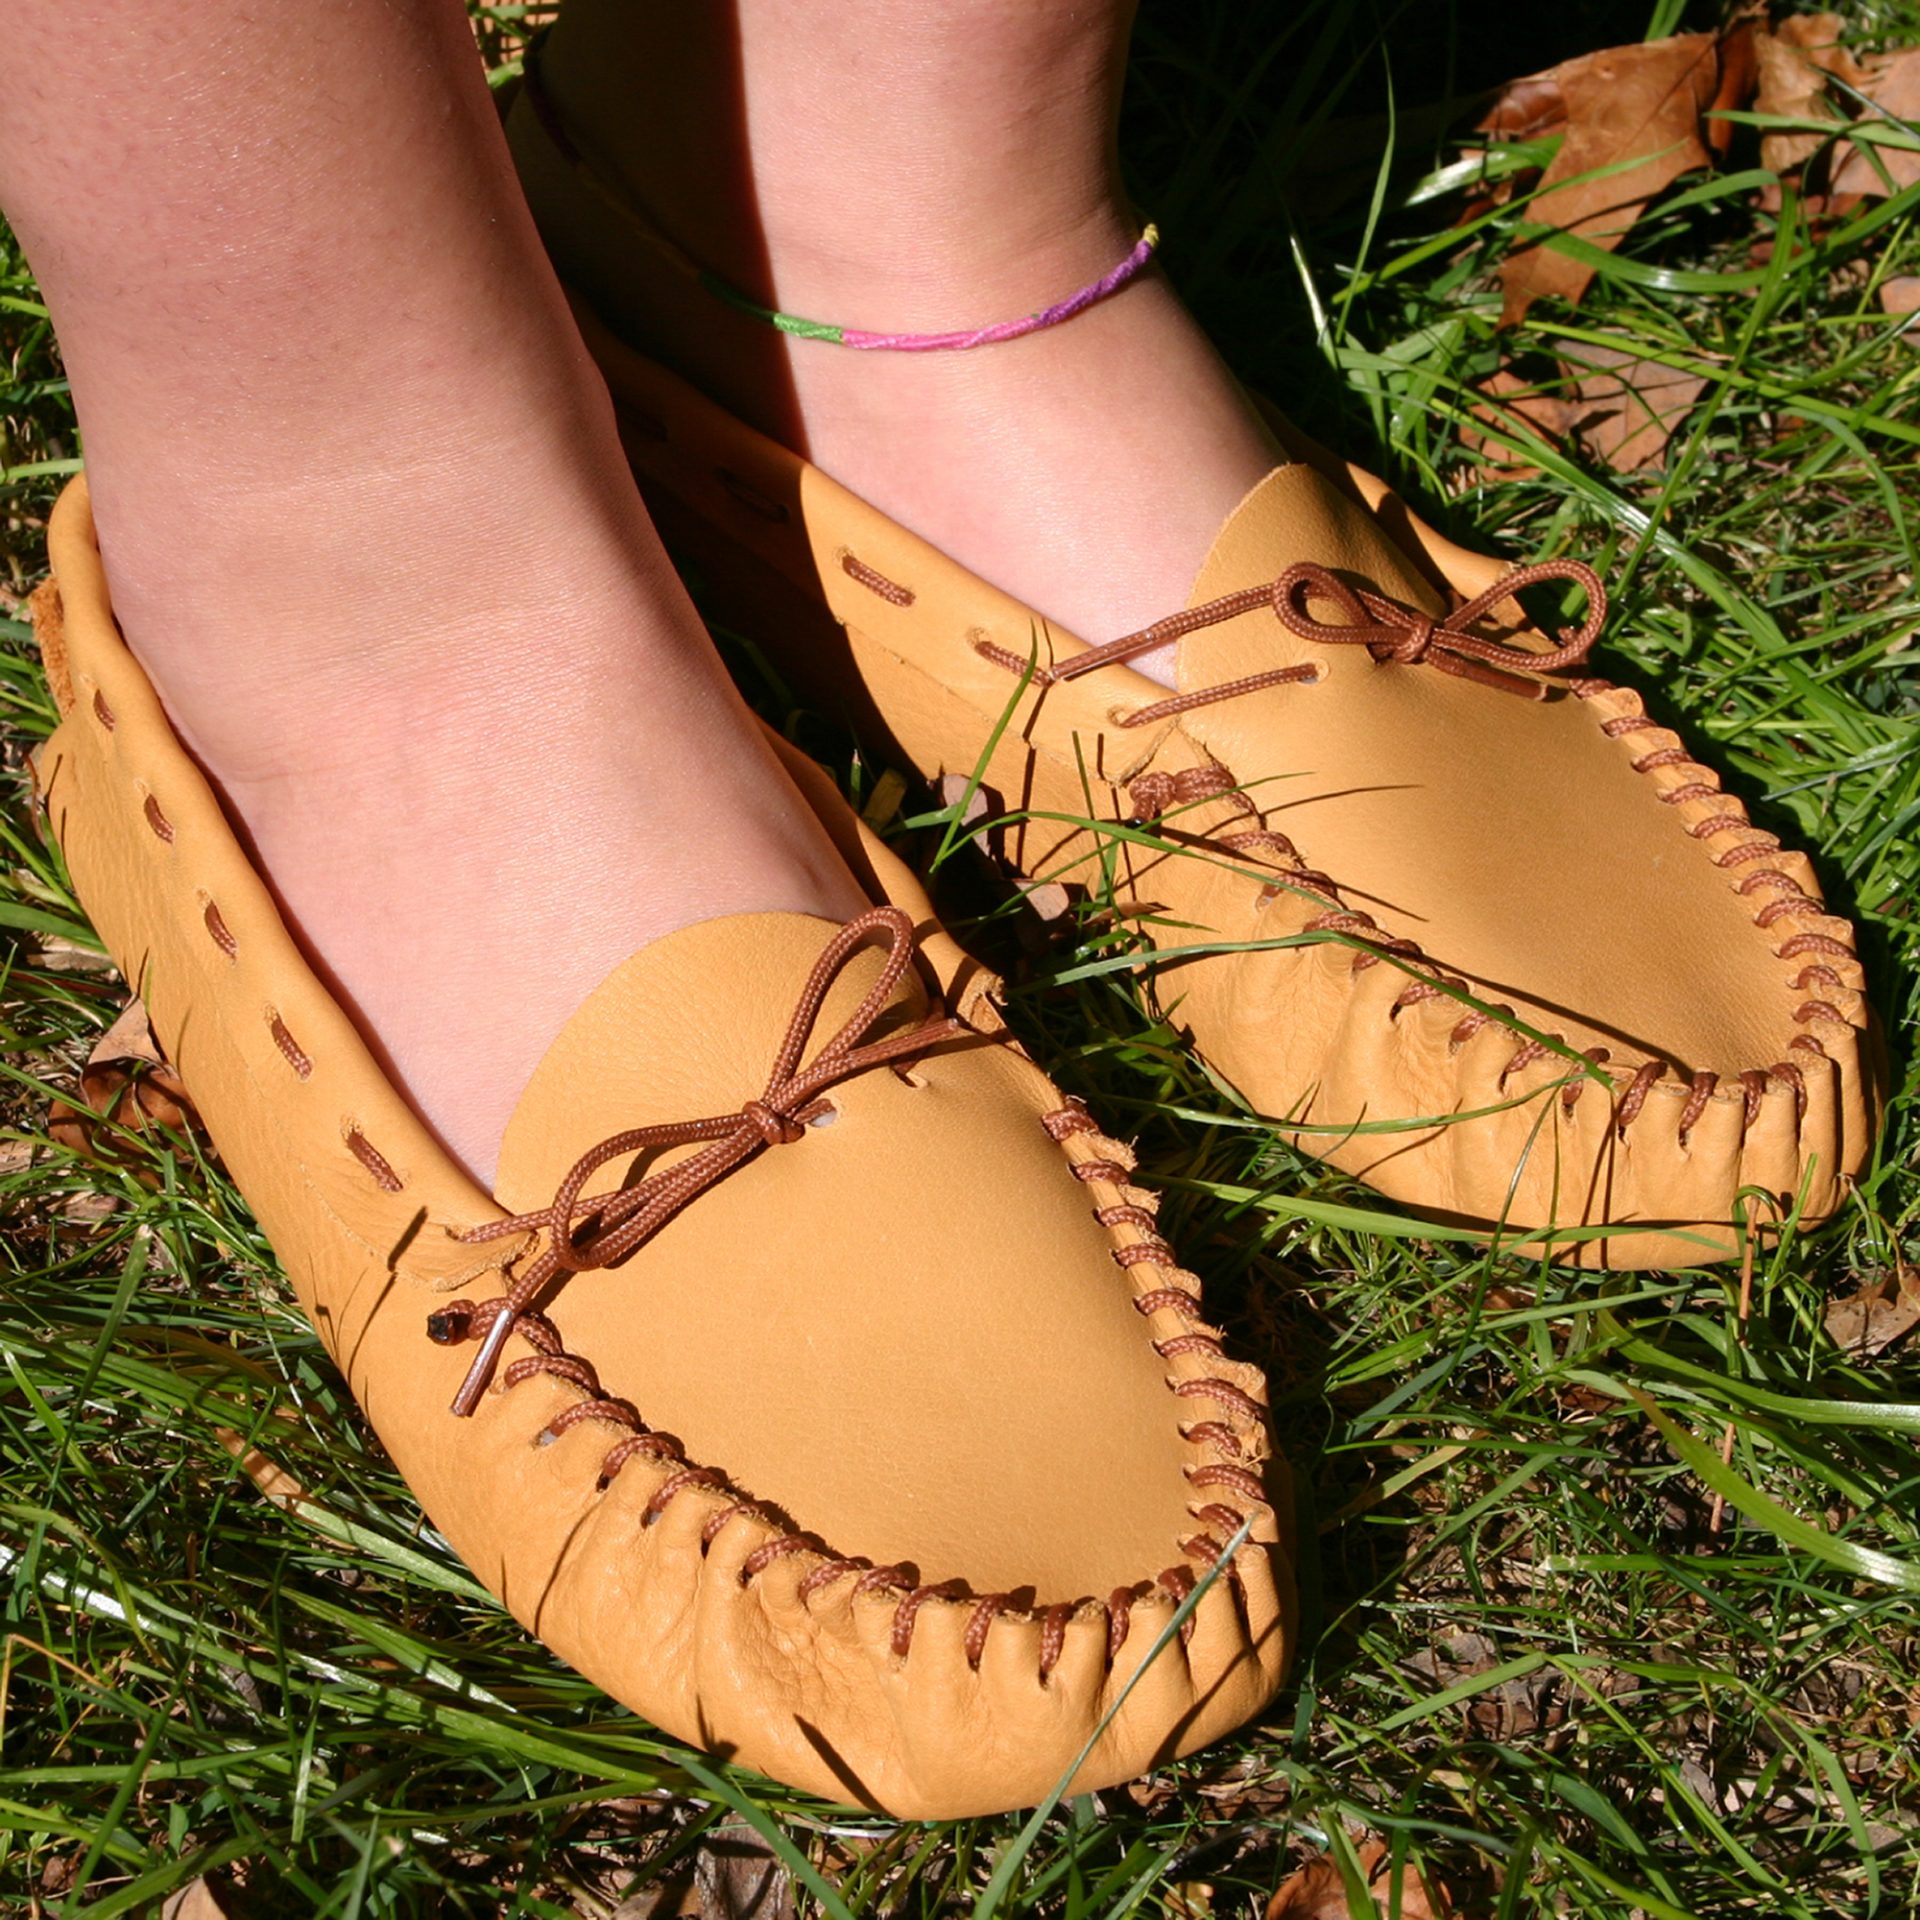 adult moccasin 4